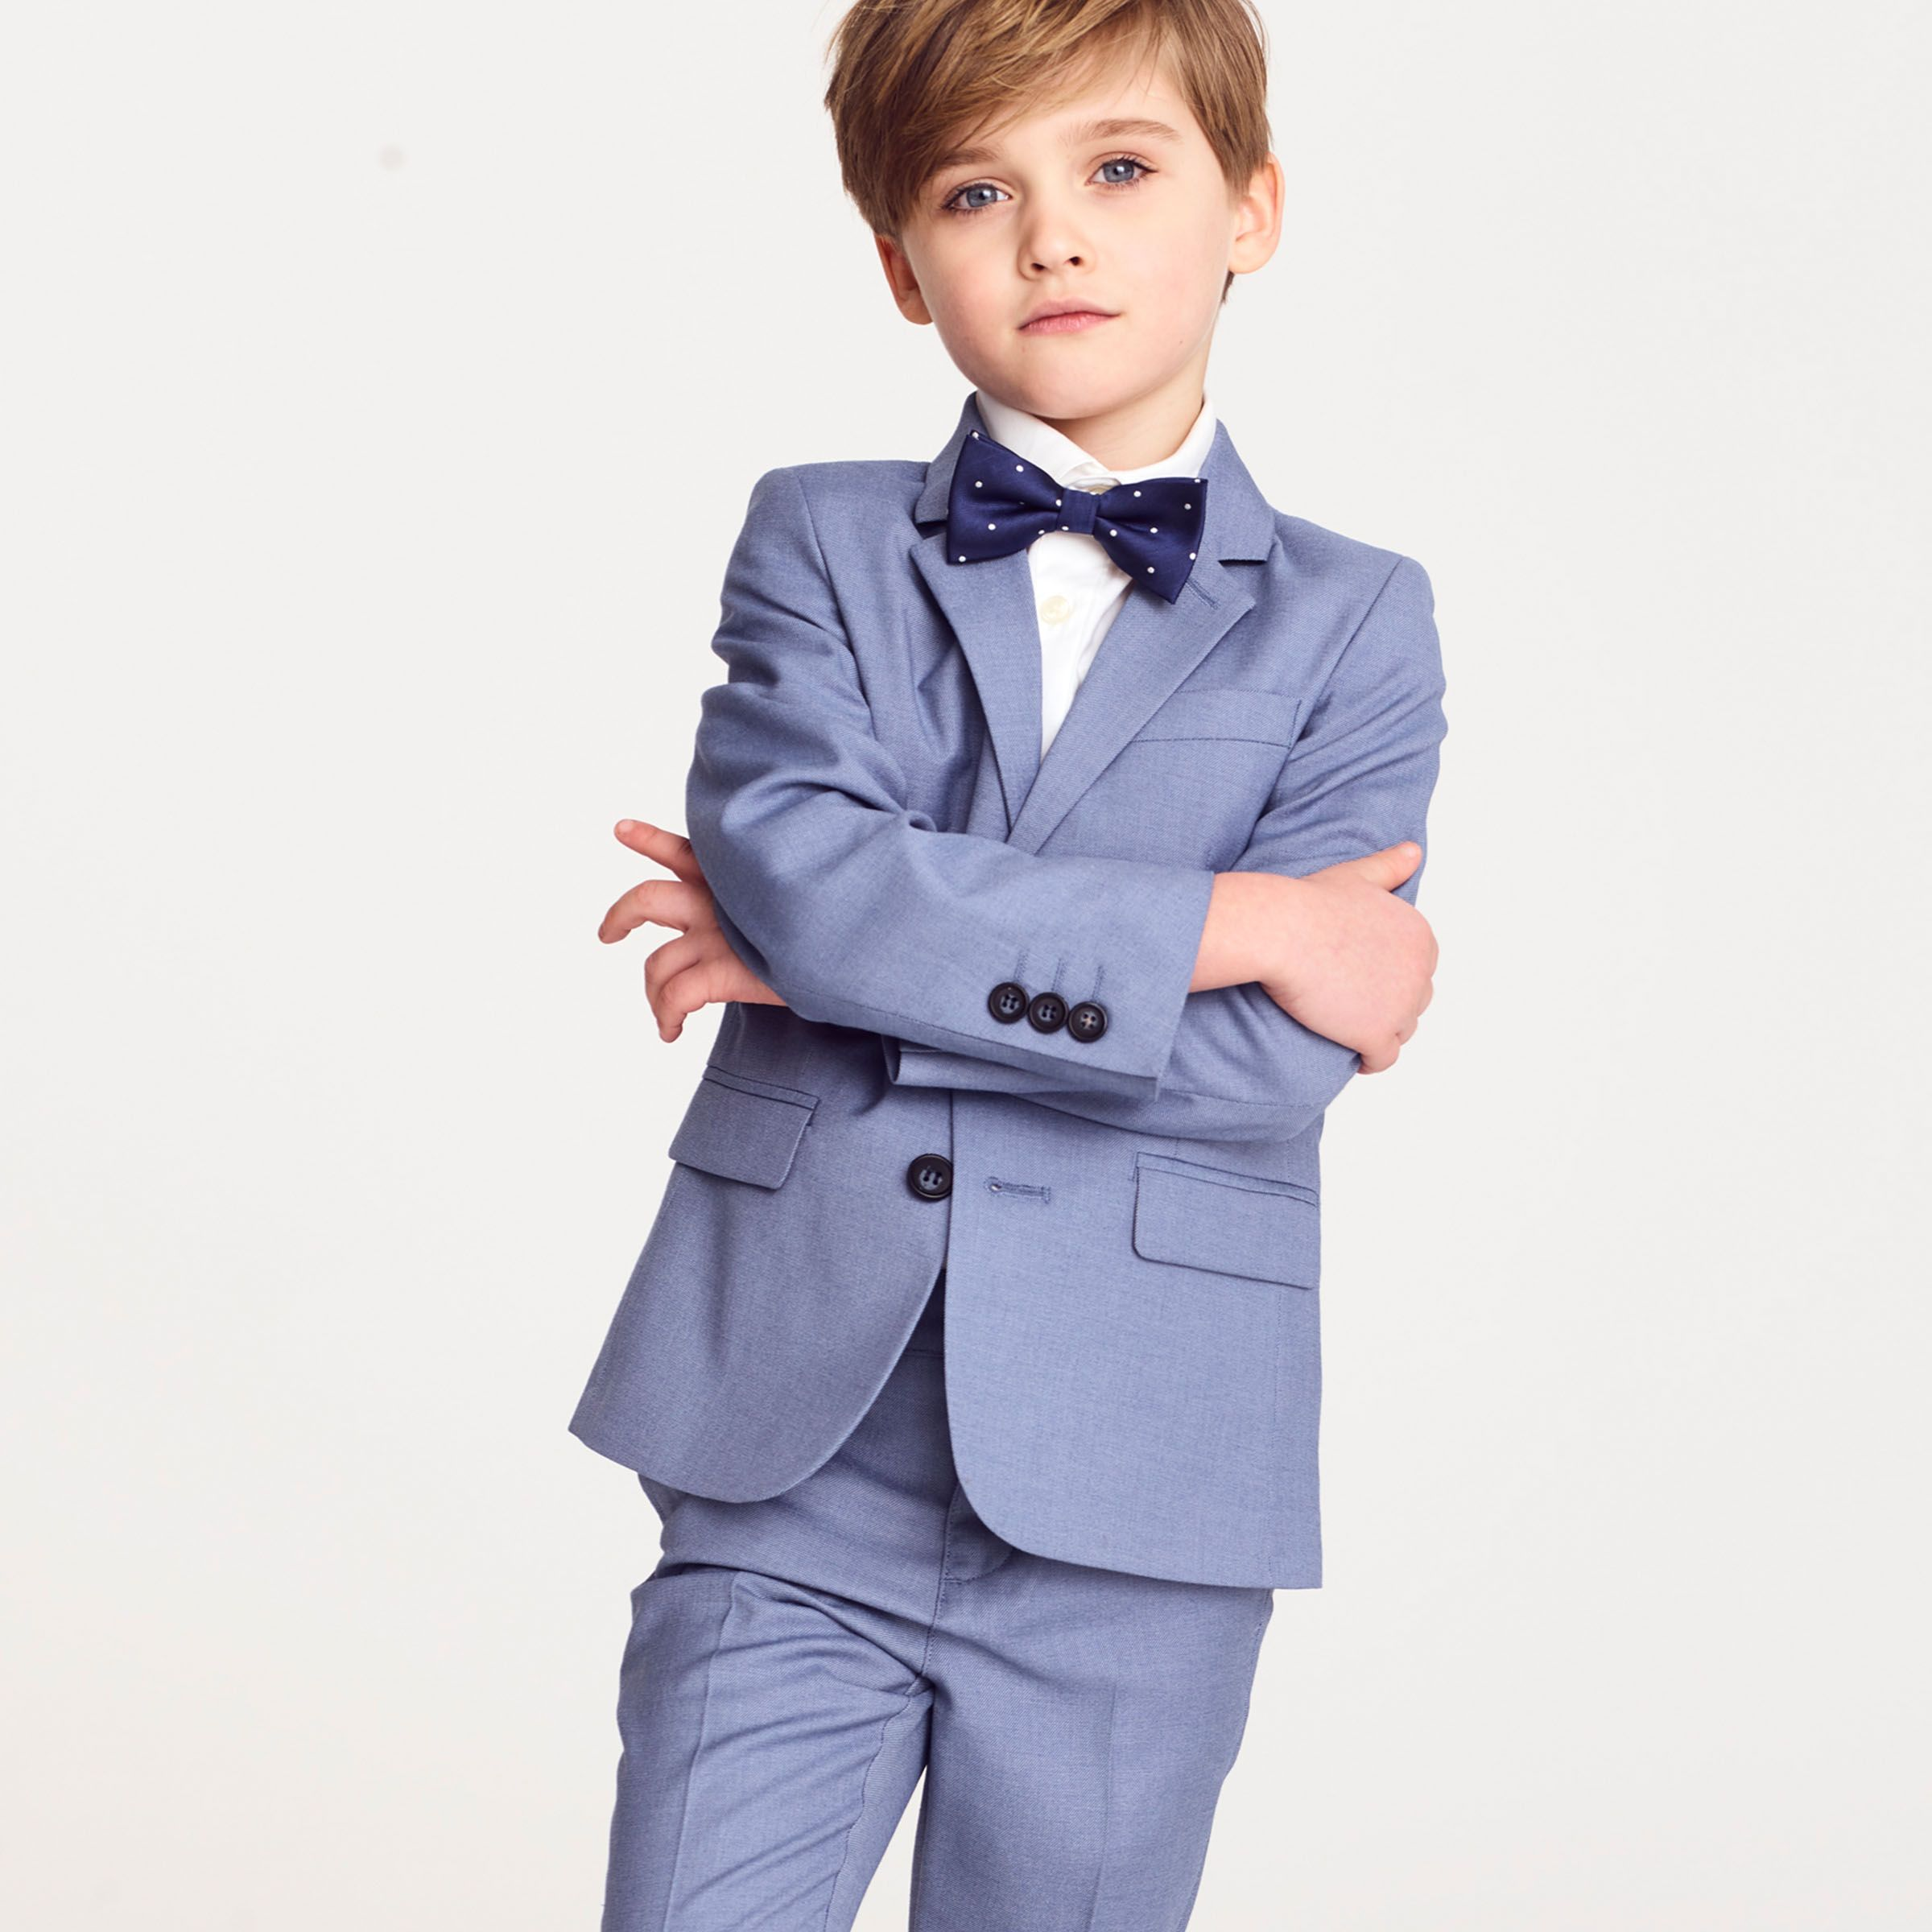 936269838fe9 ... with stylish dress shoes. Page Boy Suits